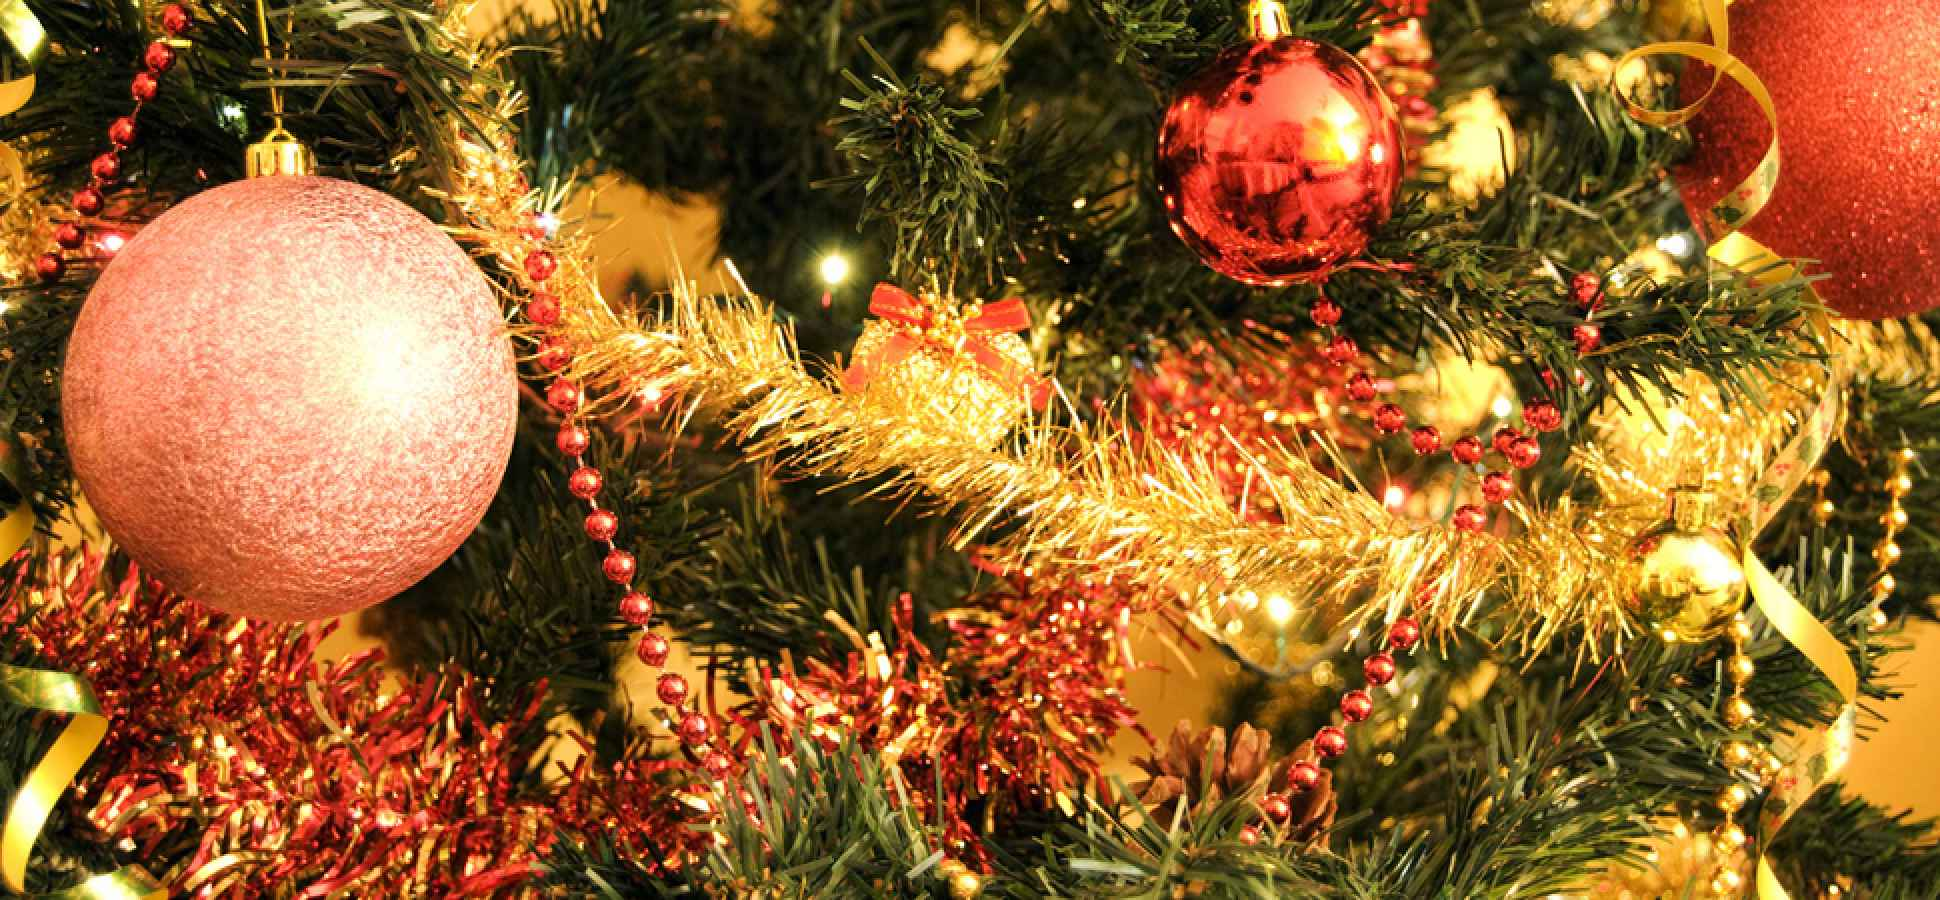 Survey: Small Businesses Expect Weak Holiday Sales in 2013